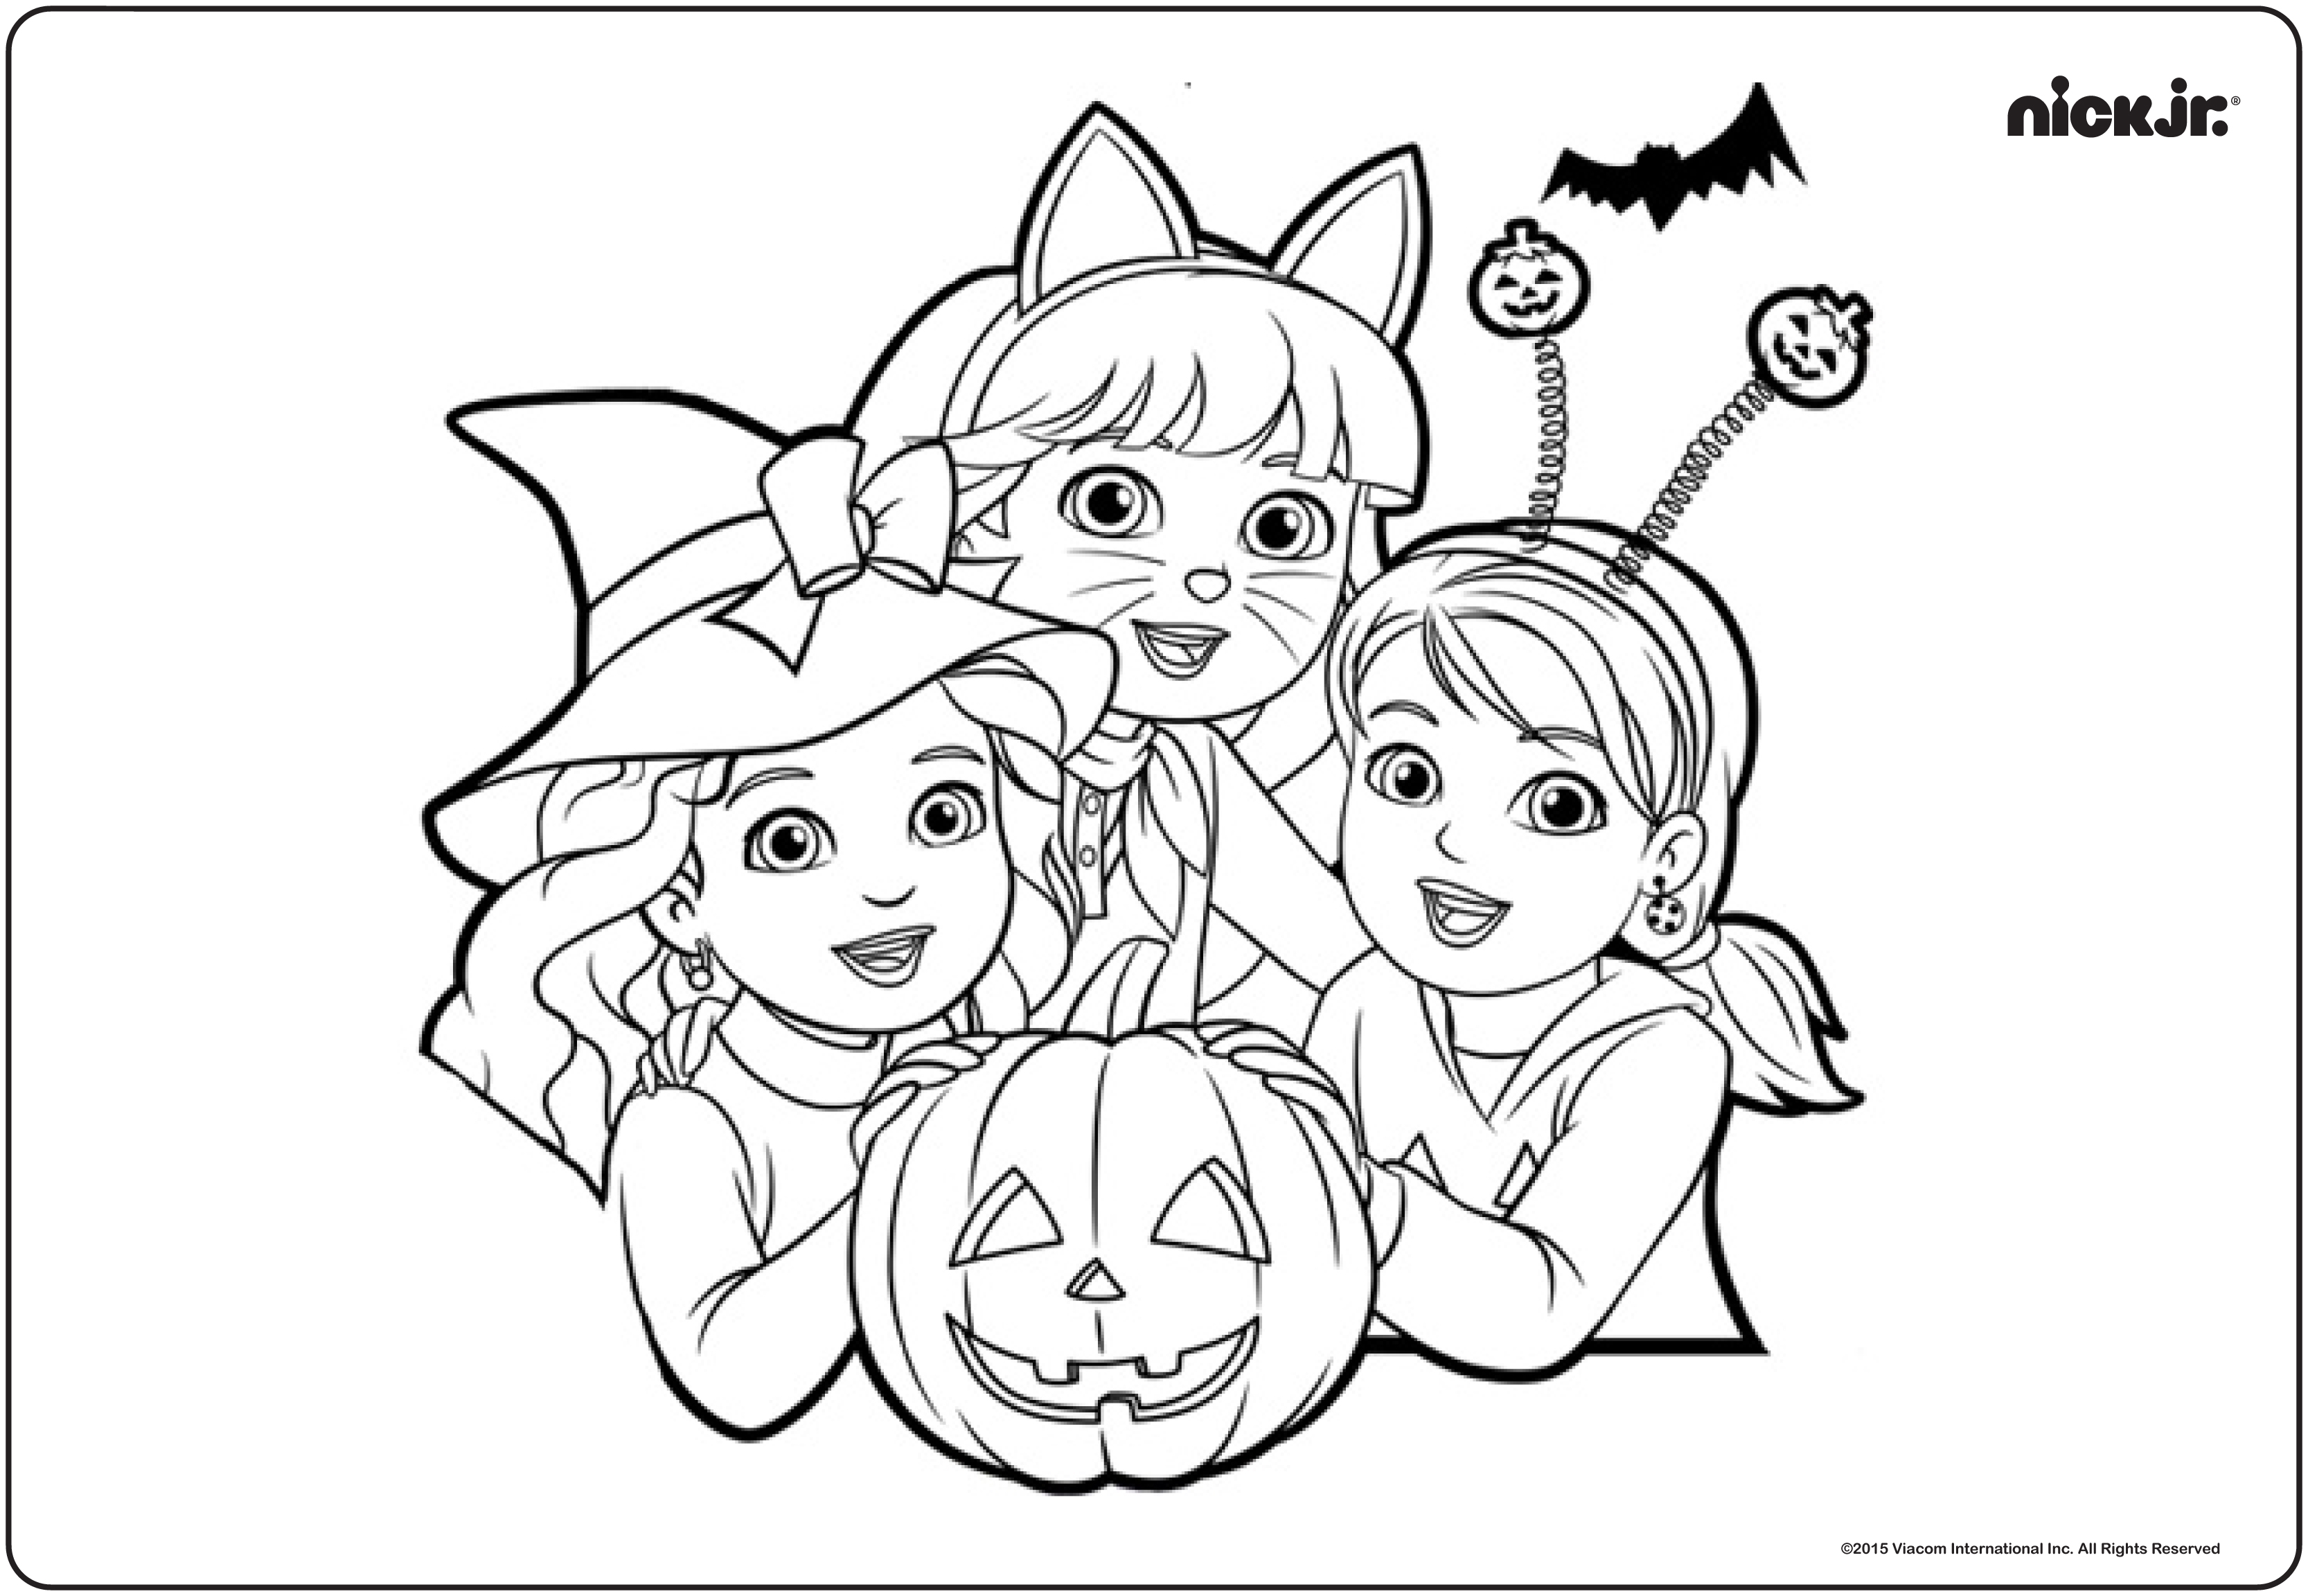 coloring pages nick jr - photo#25